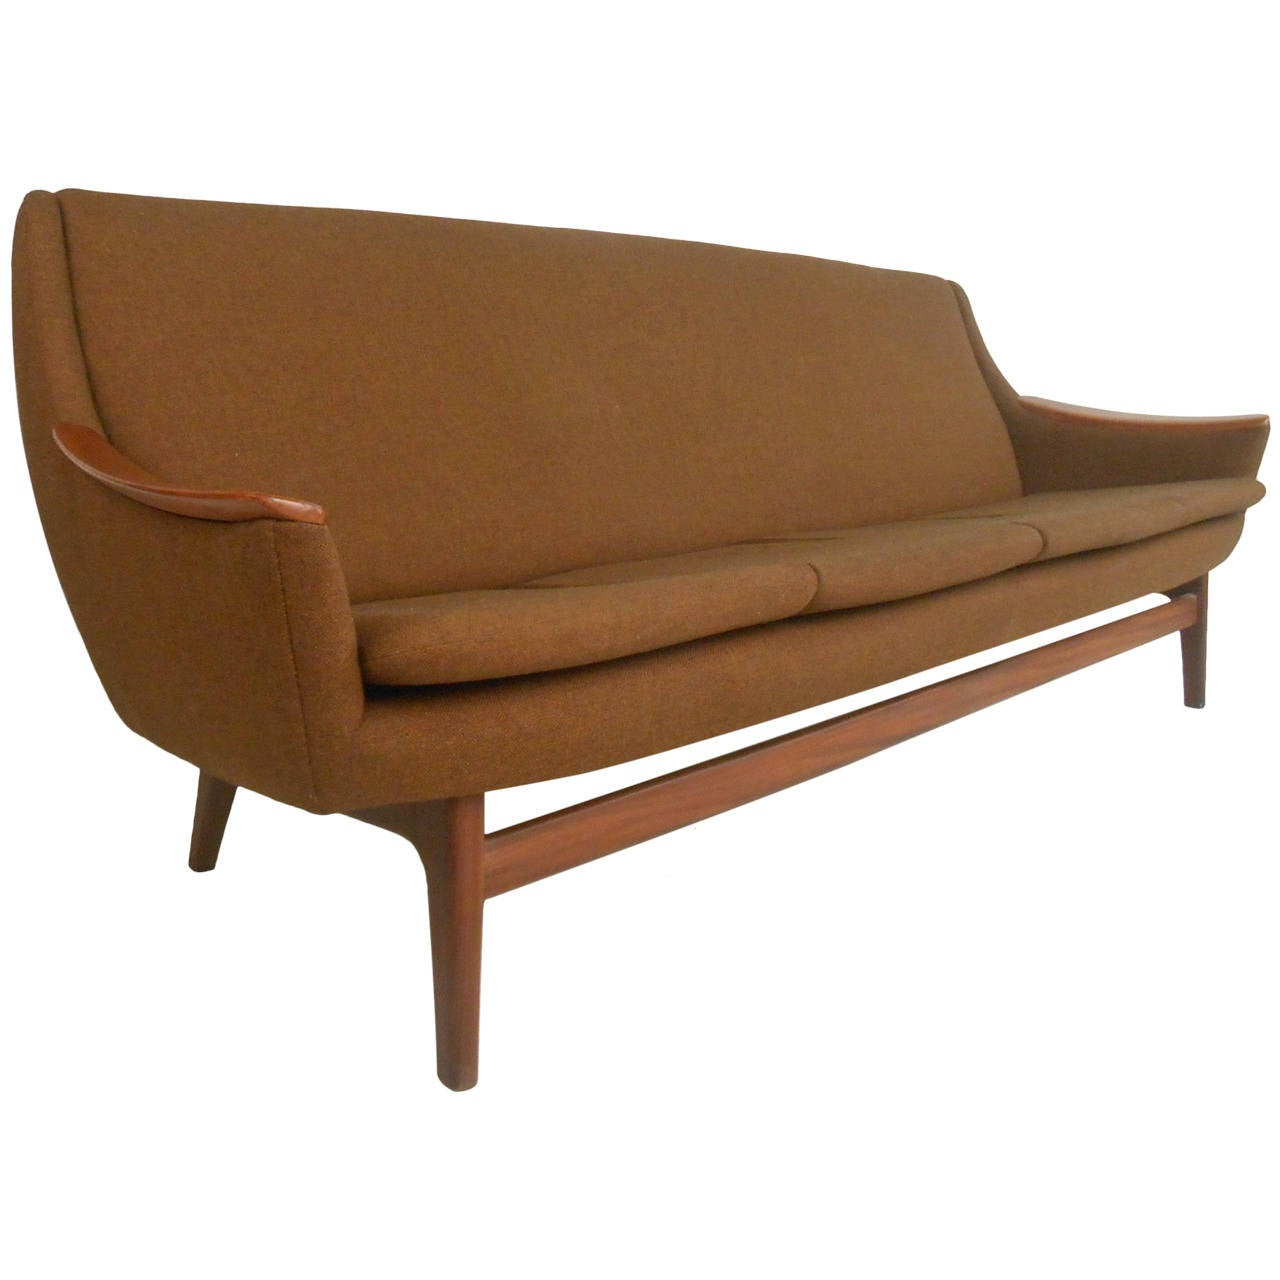 Long Scandinavian Modern Sofa For Sale At 1stdibs